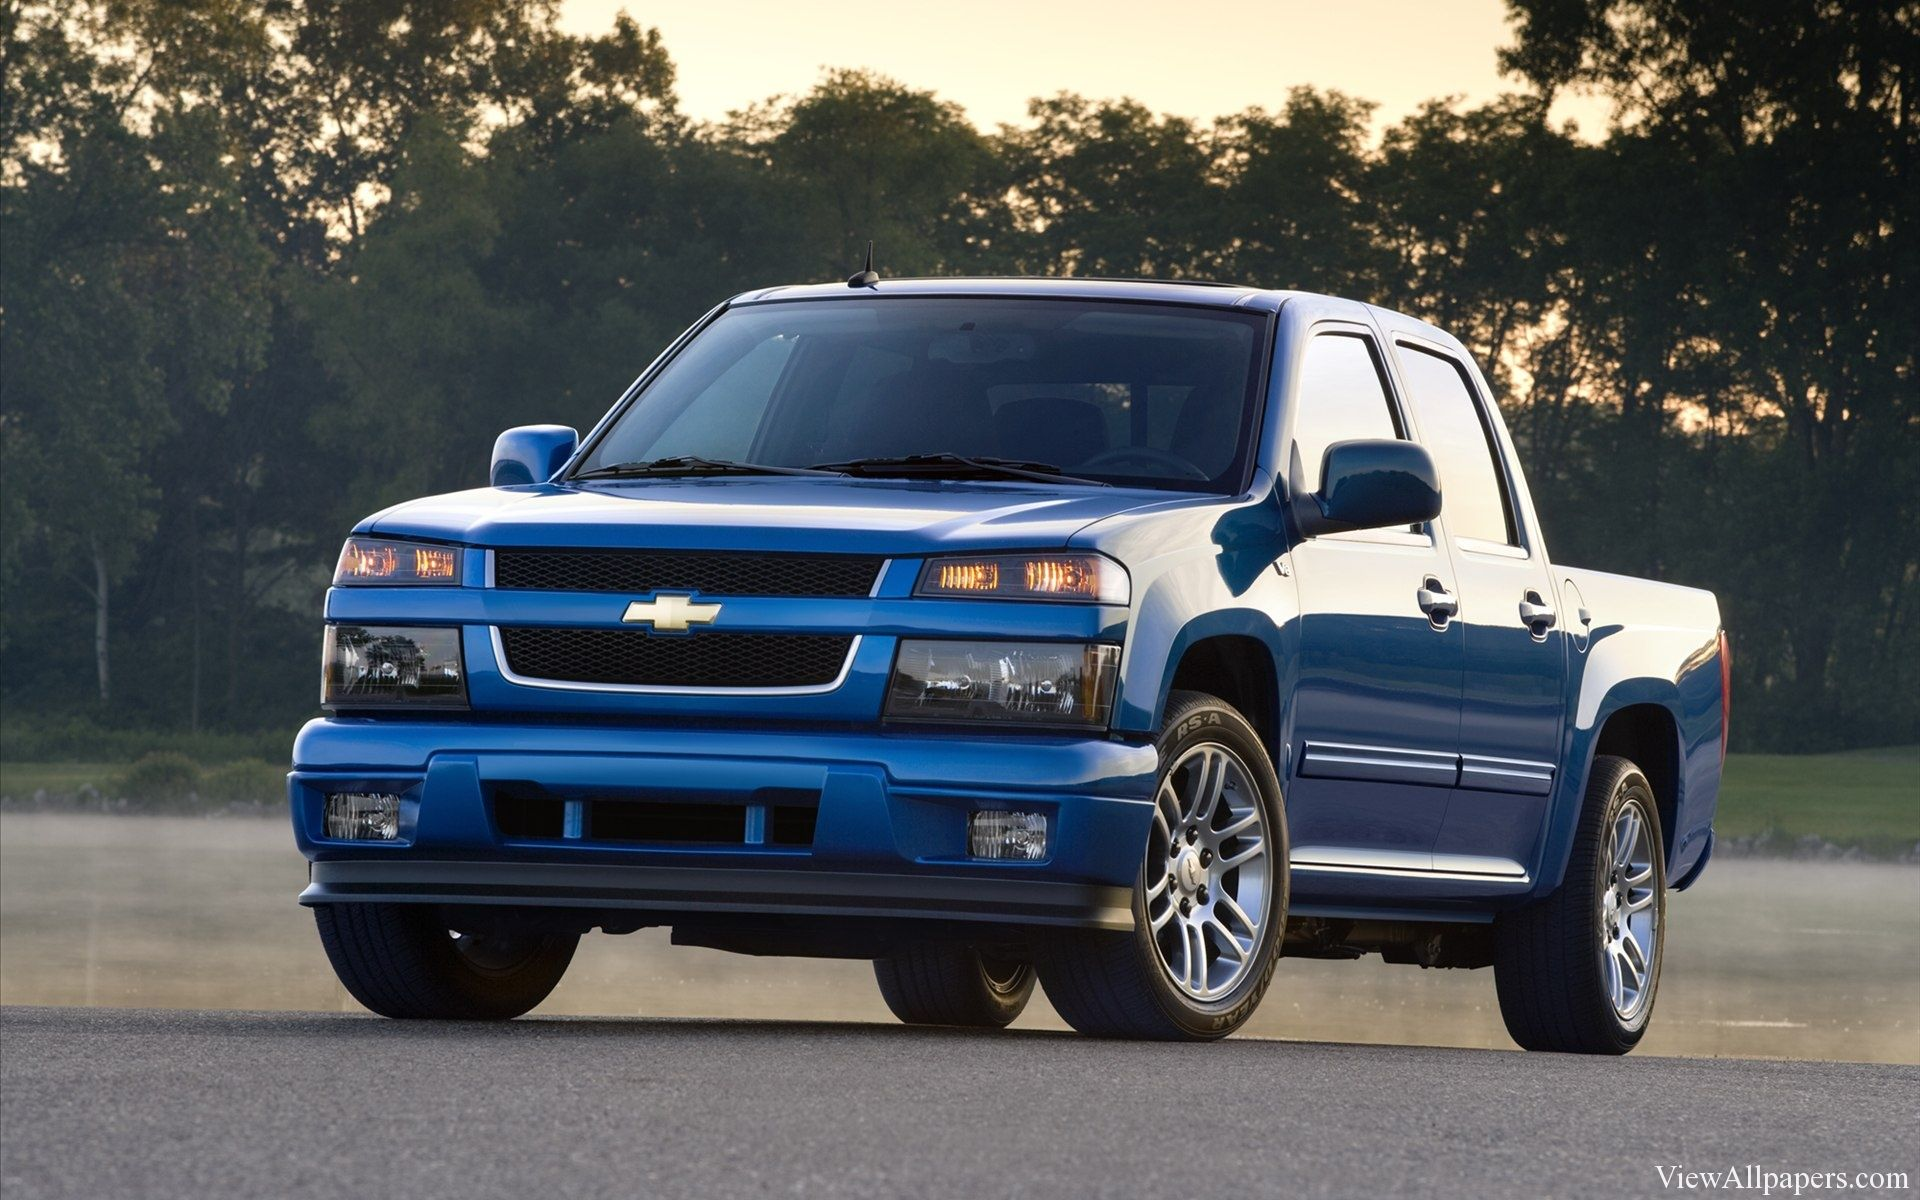 The 25 best 2007 chevy colorado ideas on pinterest pink chevy pink chevy trucks and pink car accessories